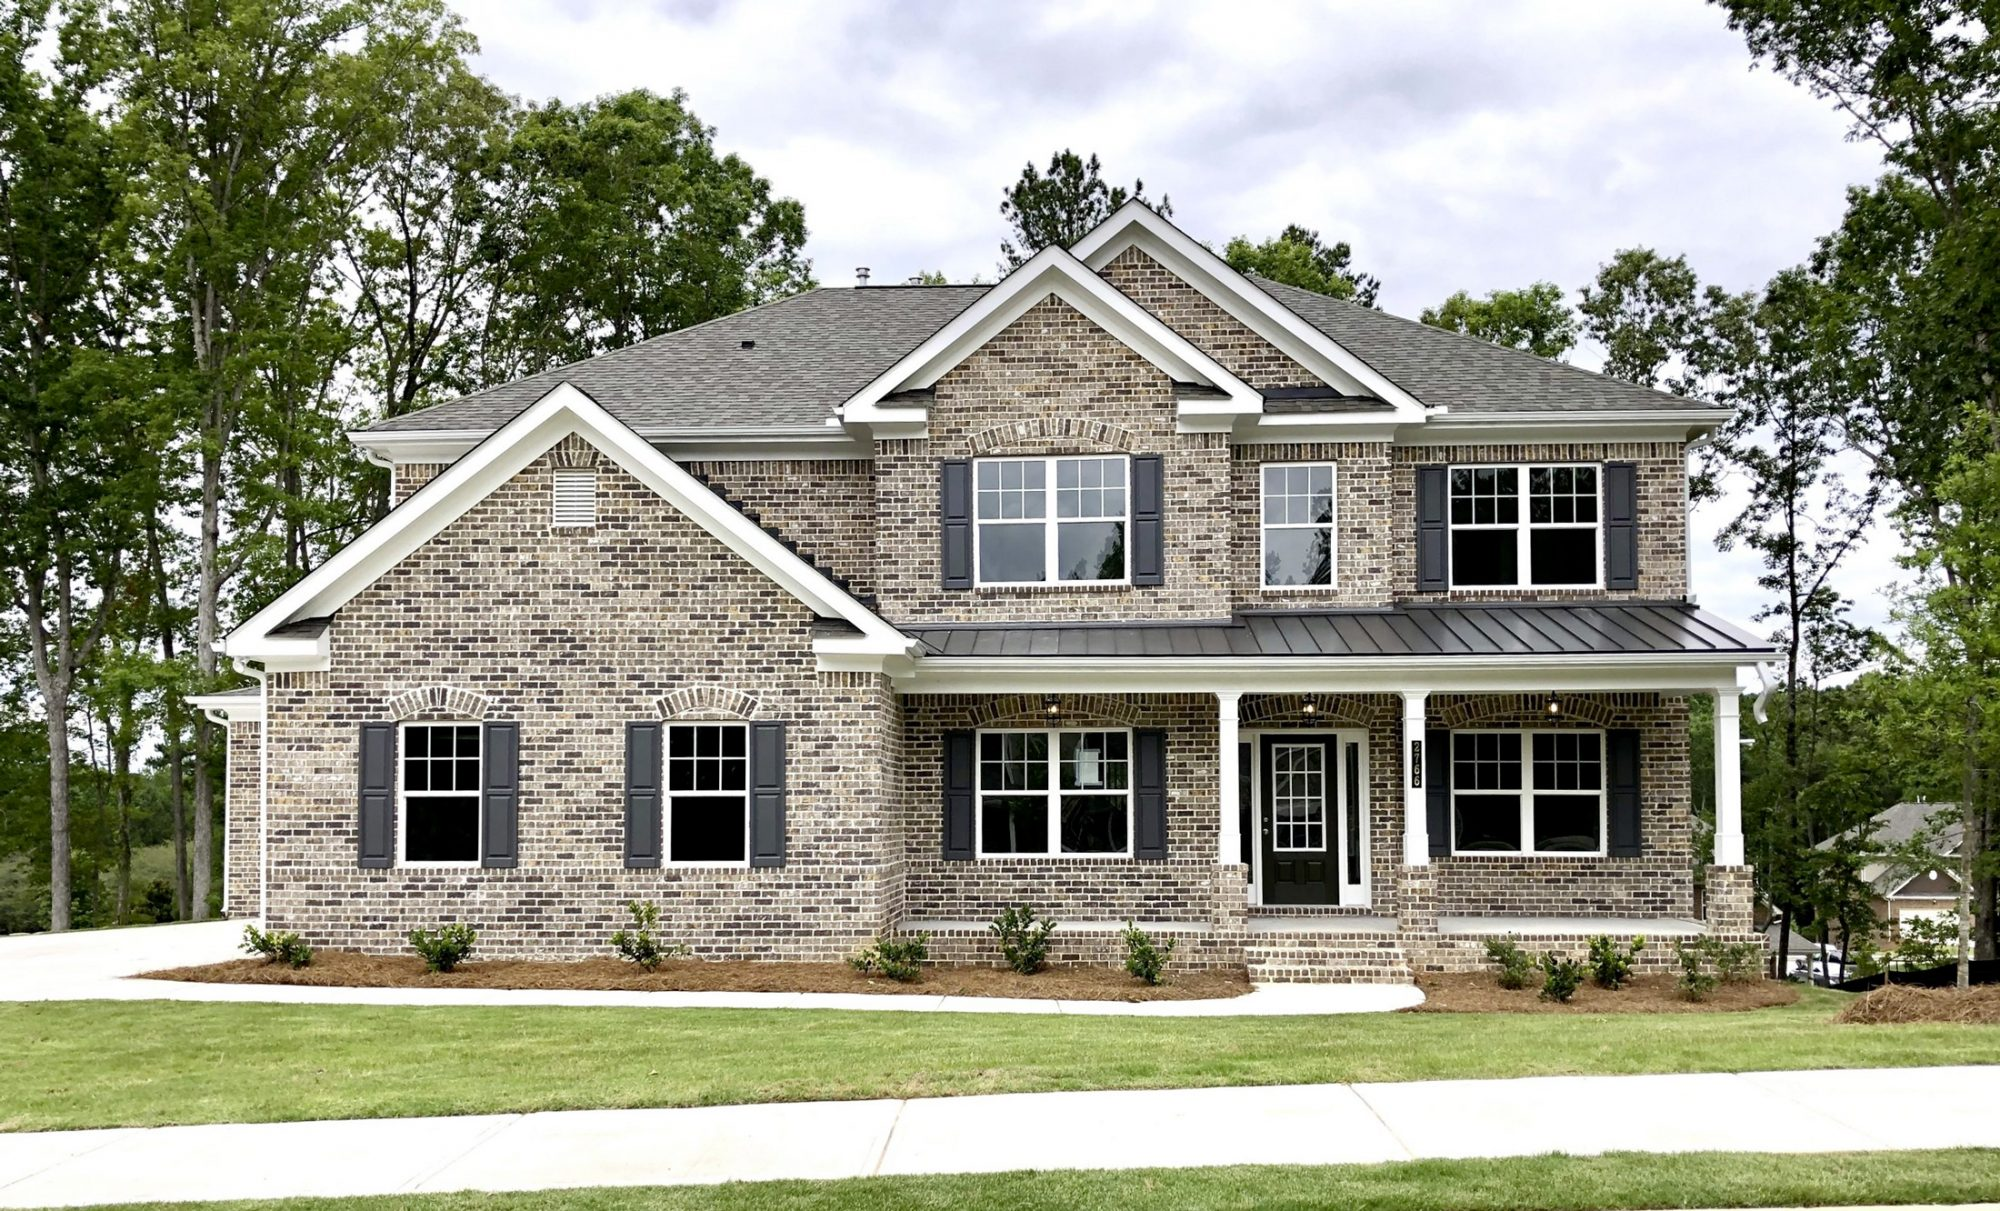 a home in centennial village - one of the ways we are silverstone communities